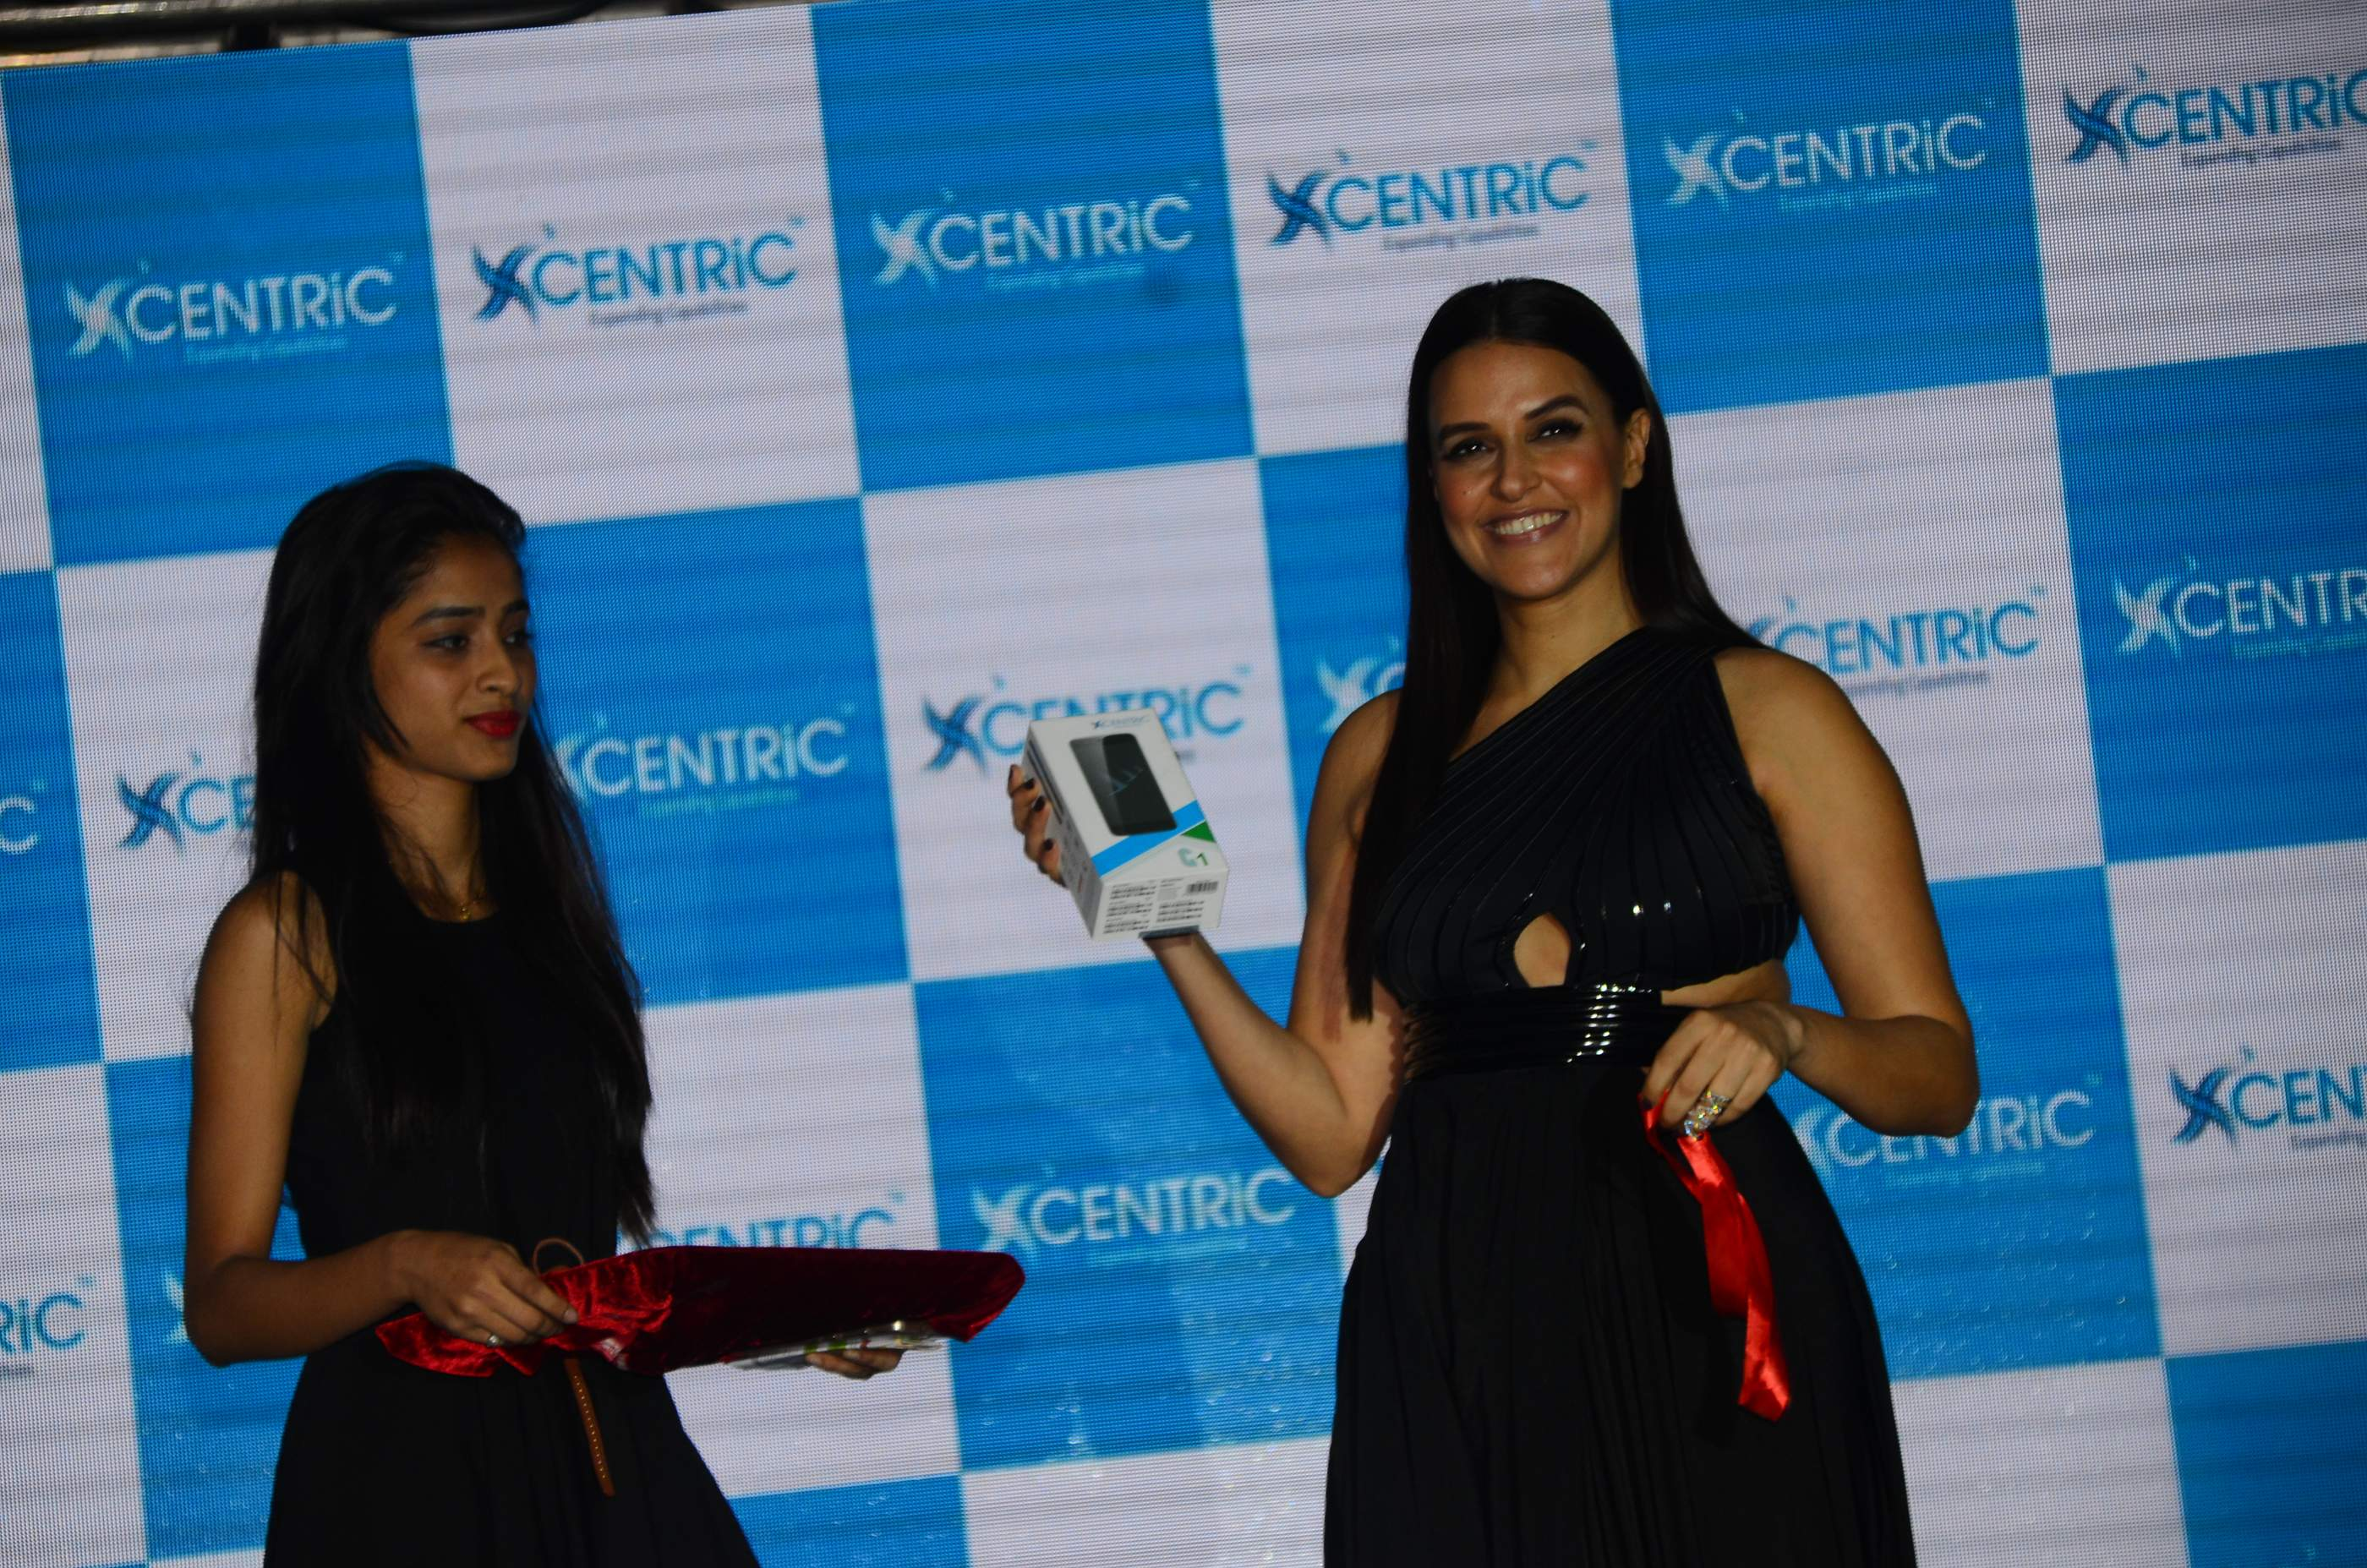 HOT Photo Stills Of Beauty Queen Neha Dhupia | Xcentric HOT Photo Stills Of Beauty Queen Neha Dhupia | Xcentric Neha Dhupia Xcentric 23